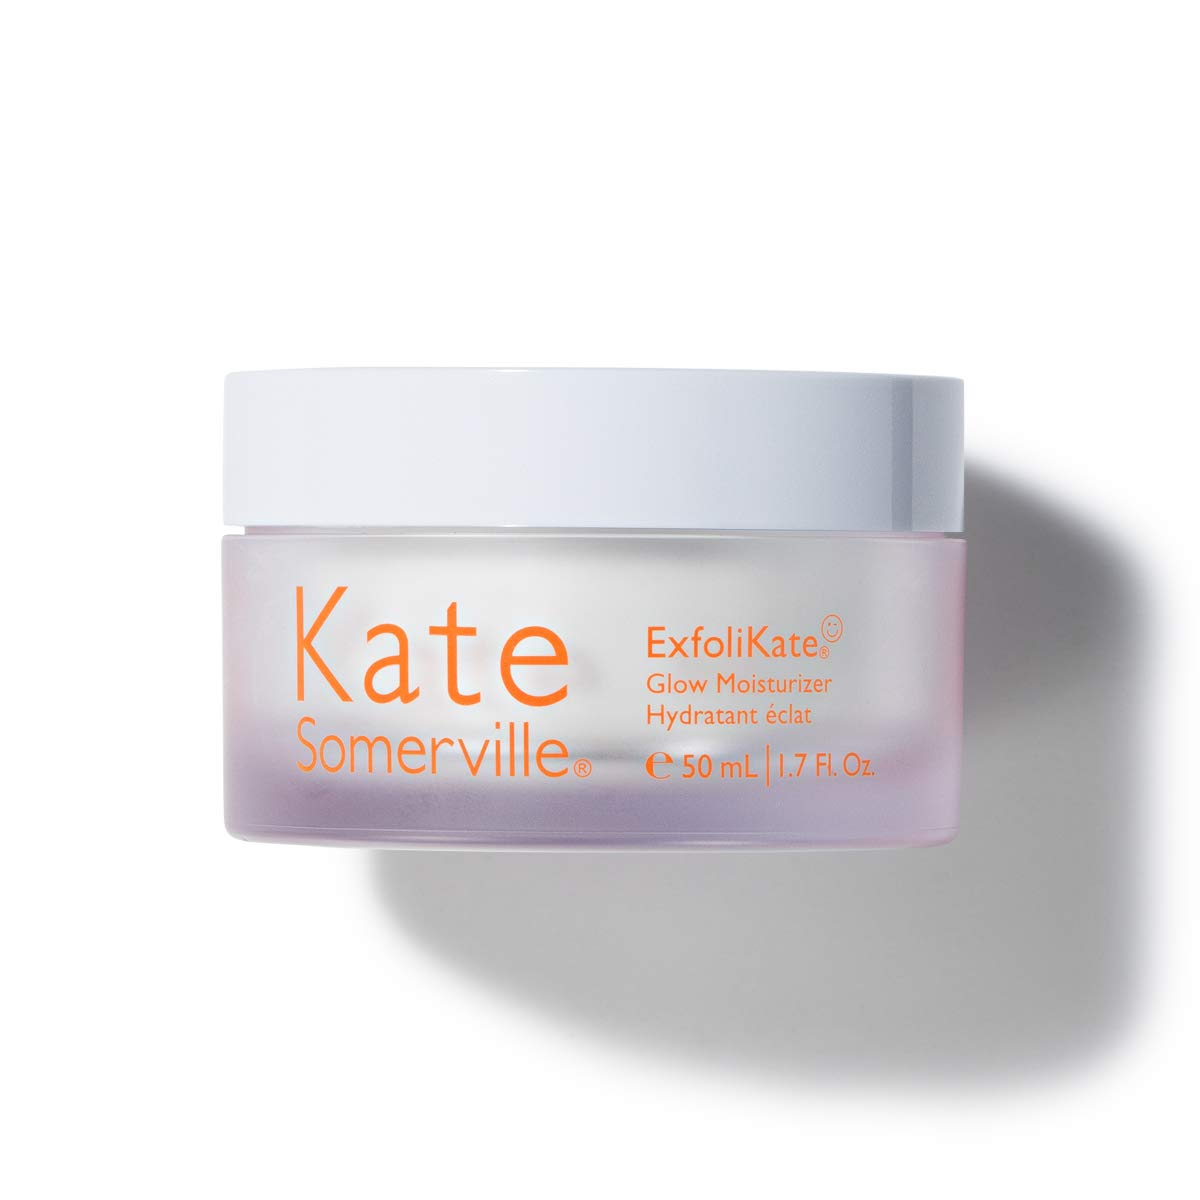 Kate Somerville ExfoliKate Glow Moisturizer (1.7 Fl. Oz.) Daily Moisturizer to Reduce the Appearance of Dullness, Uneven Skin Texture, and Wrinkles